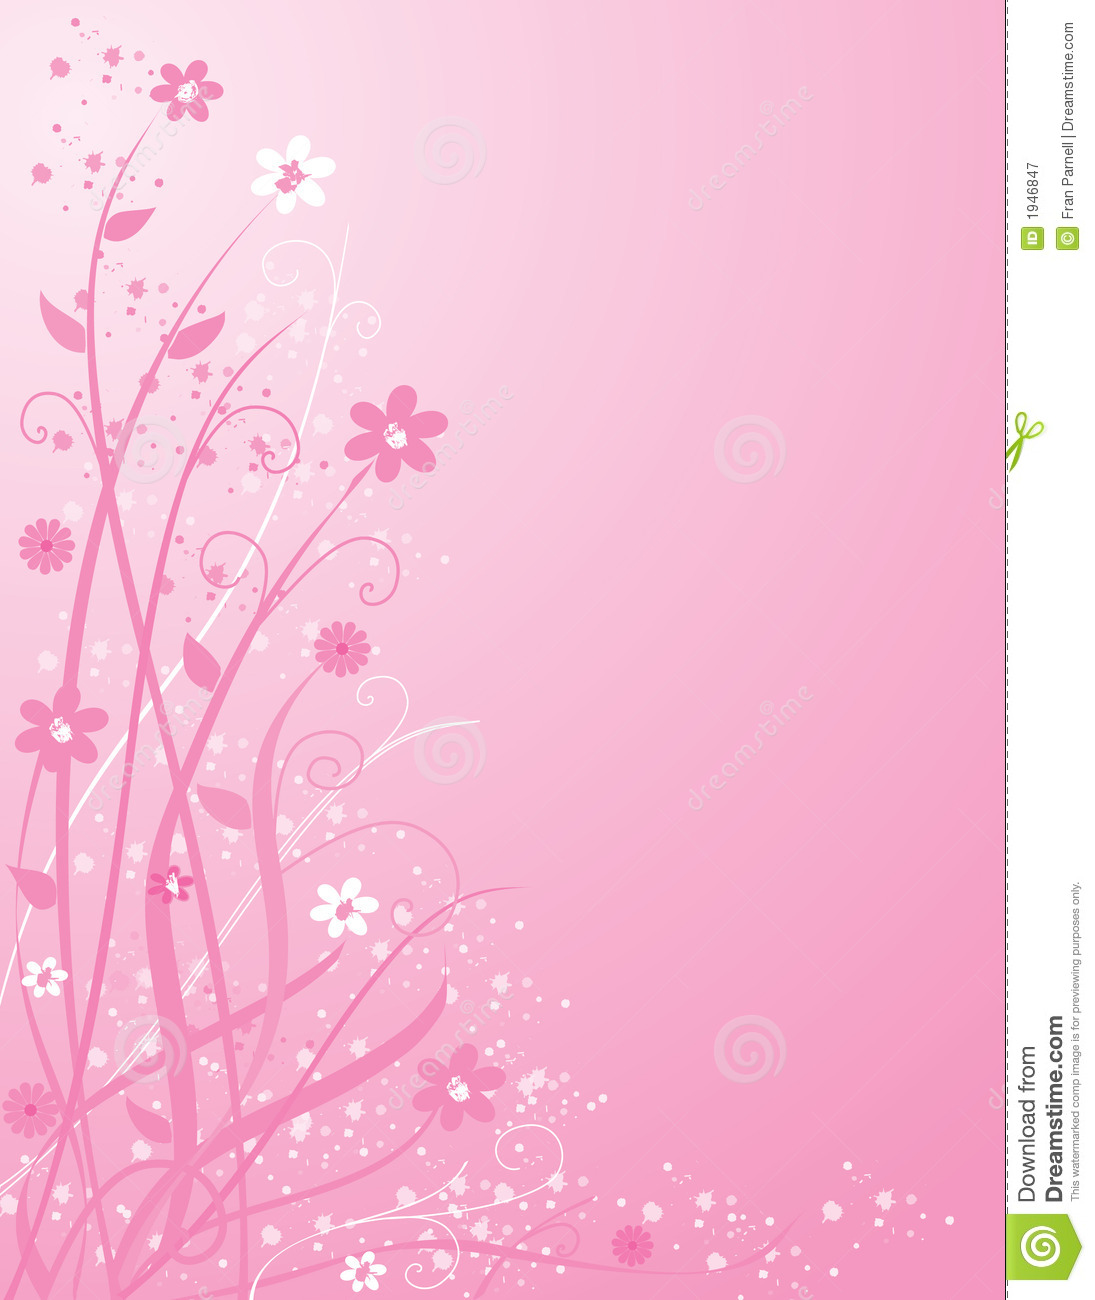 Pink Floral Background Stock Vector Illustration Of Design 1946847